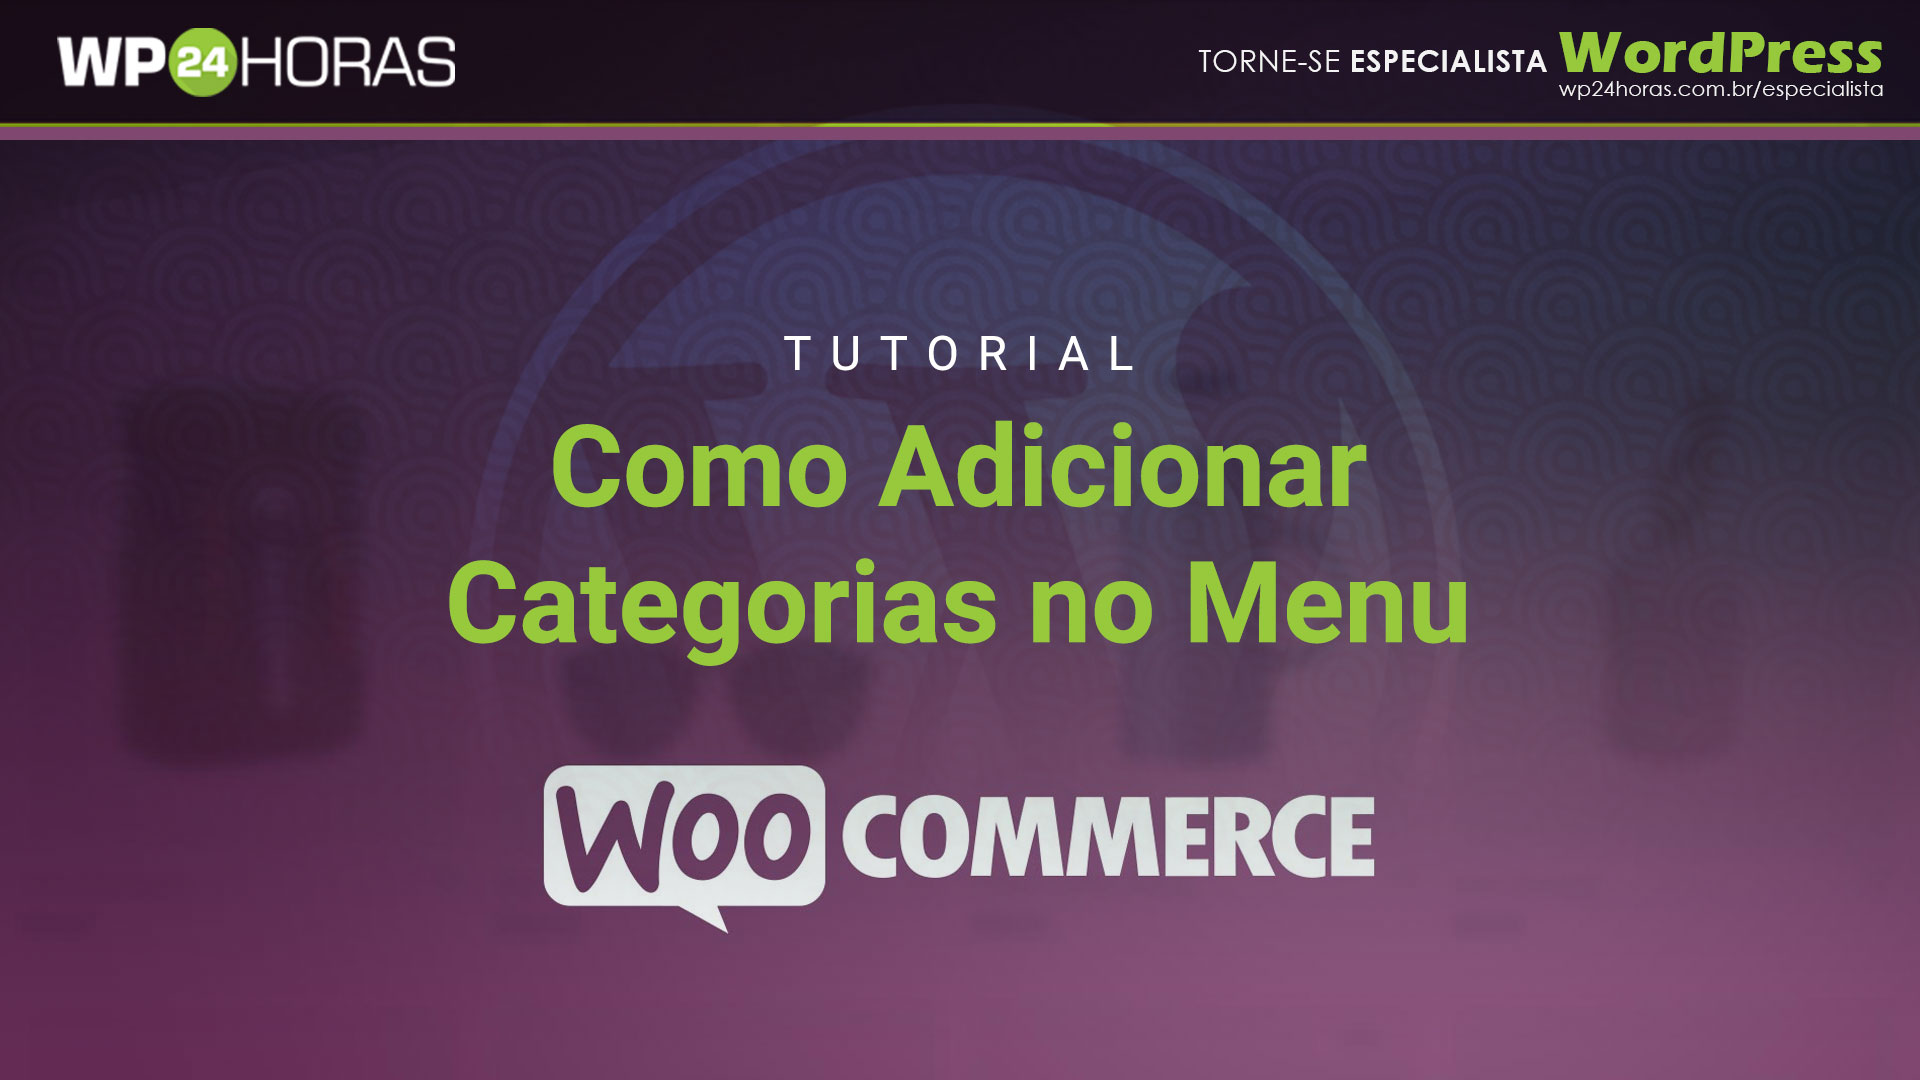 Como Adicionar Categorias de Produtos no Menu do WordPress